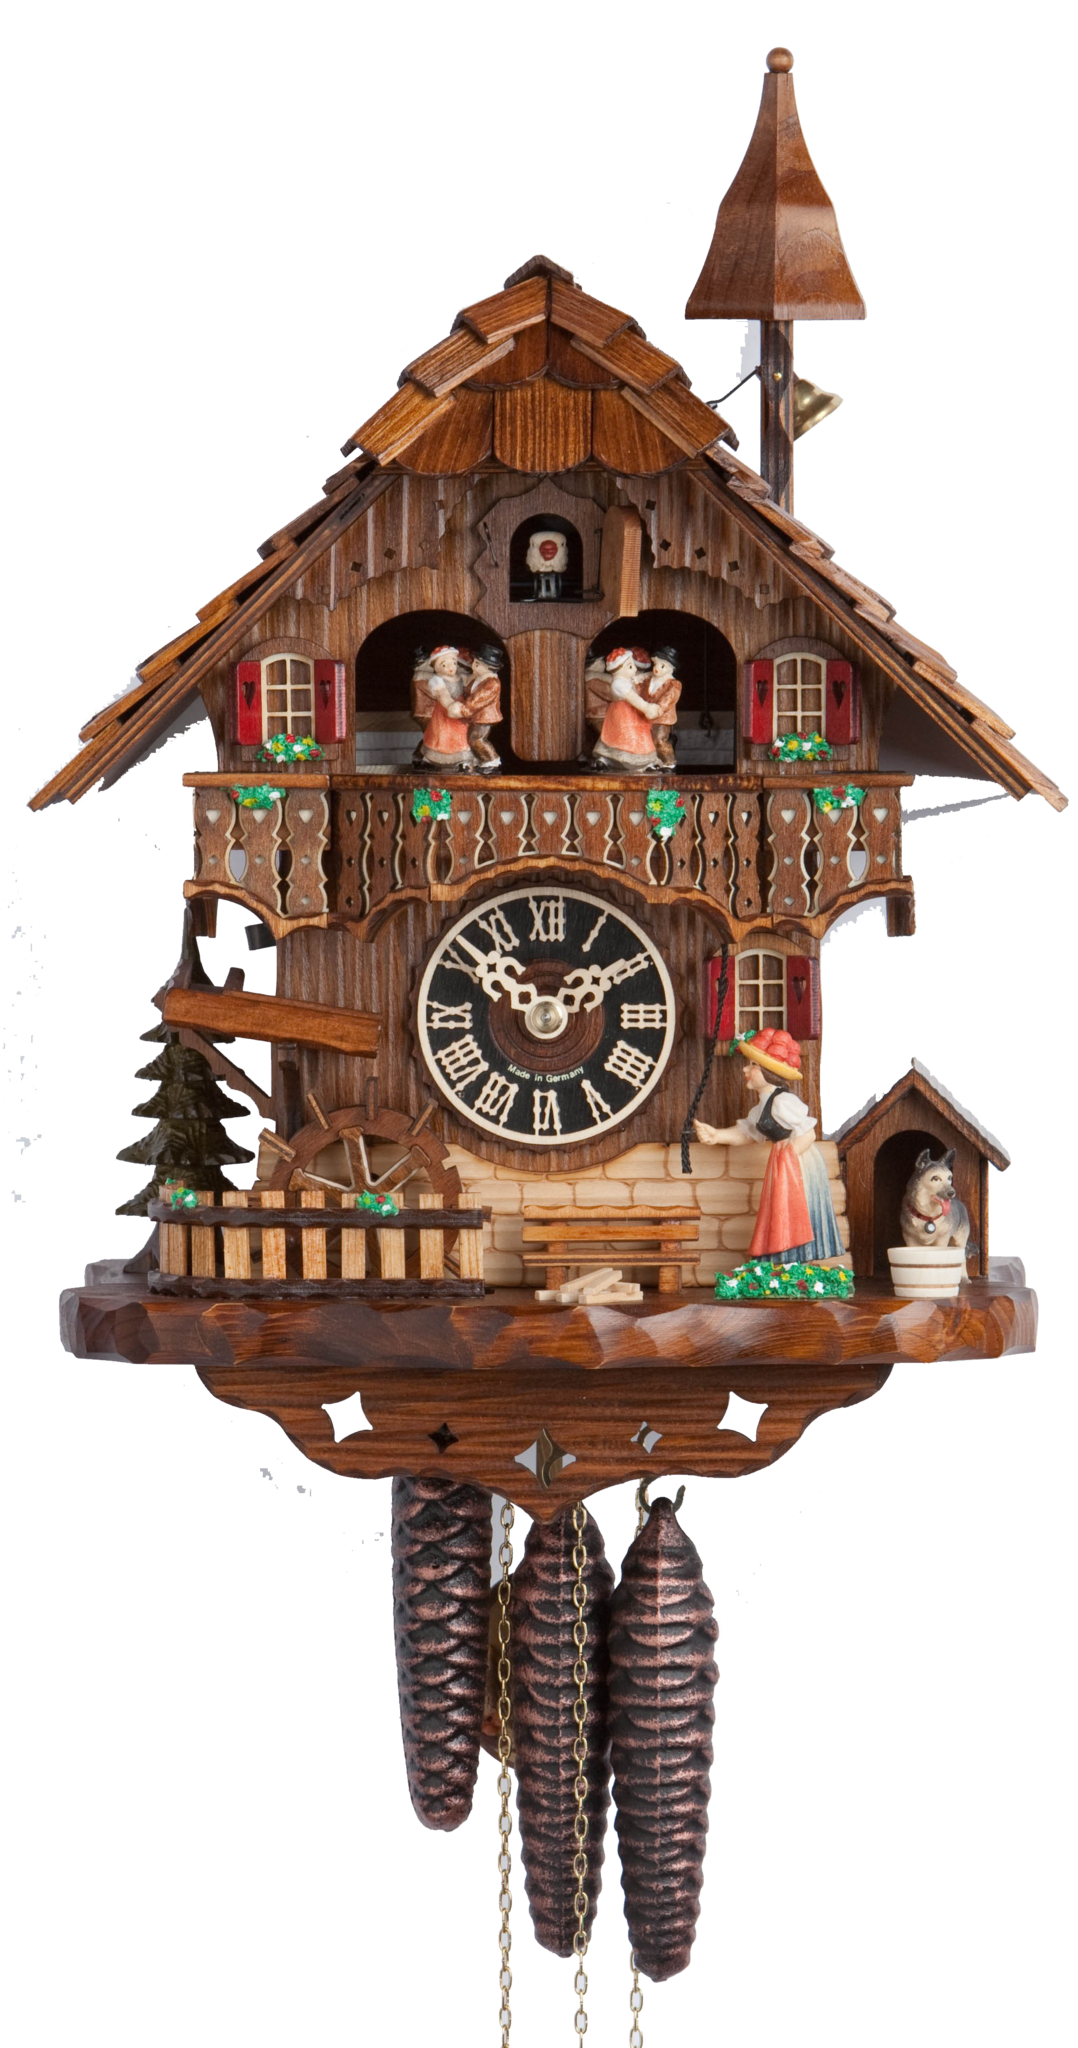 Cuckoo Clock Black Forest House Moving Wheel 1-Day Movement Music - Cuckoo Clock PNG